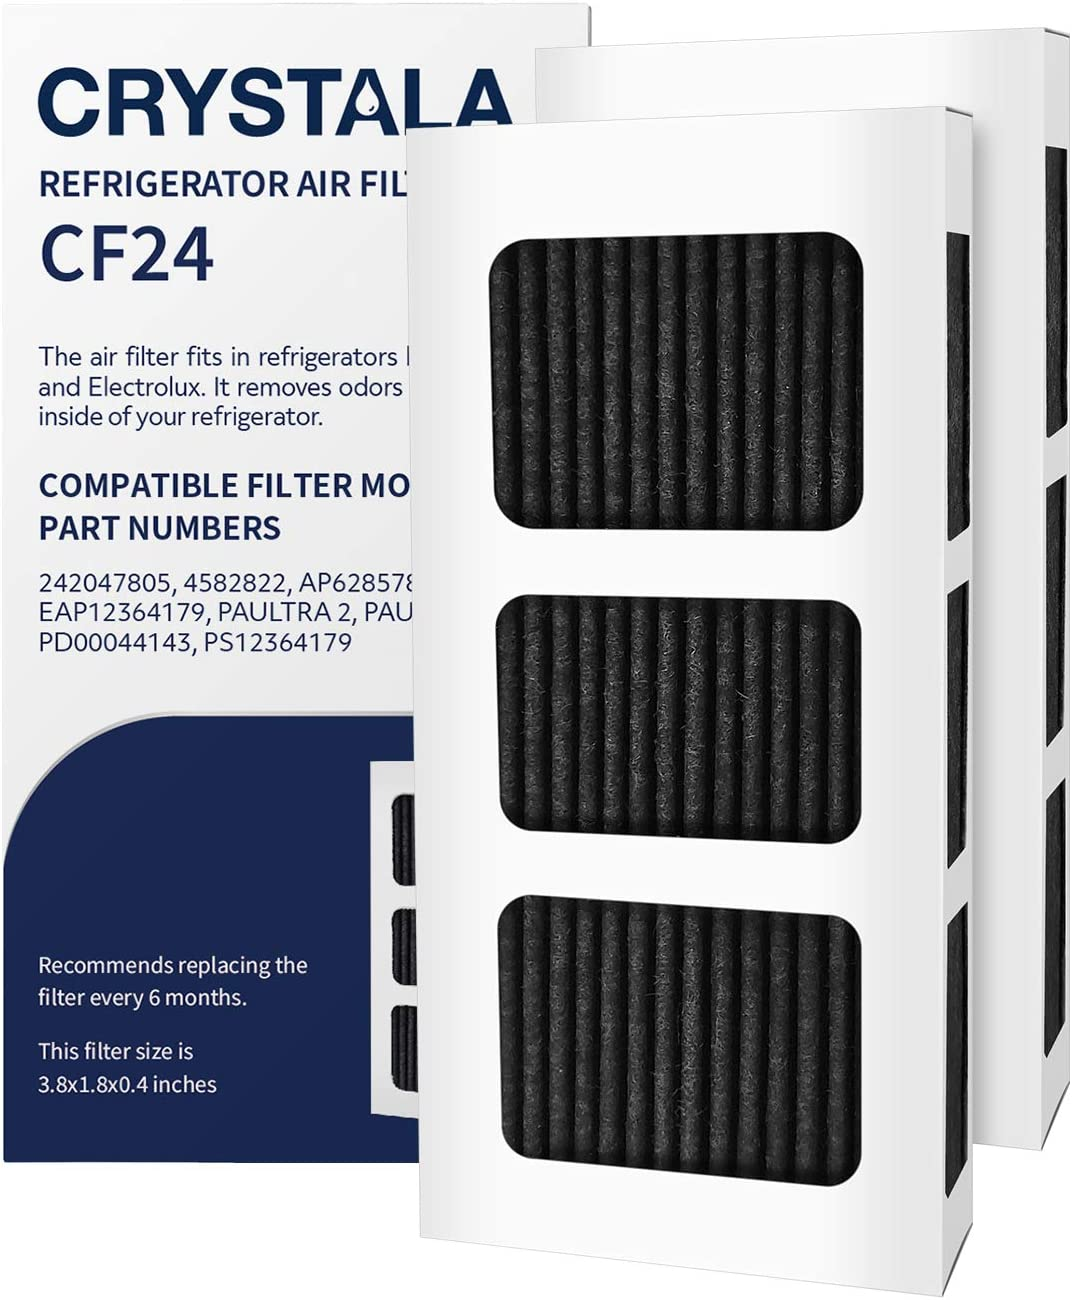 Crystala Filters PAULTRA2 Air Filter compatible with Frigidaire PureAir Ultra II Air Filter AP6285787, EAP12364179 Refrigerator Air Filters (2 Pack)